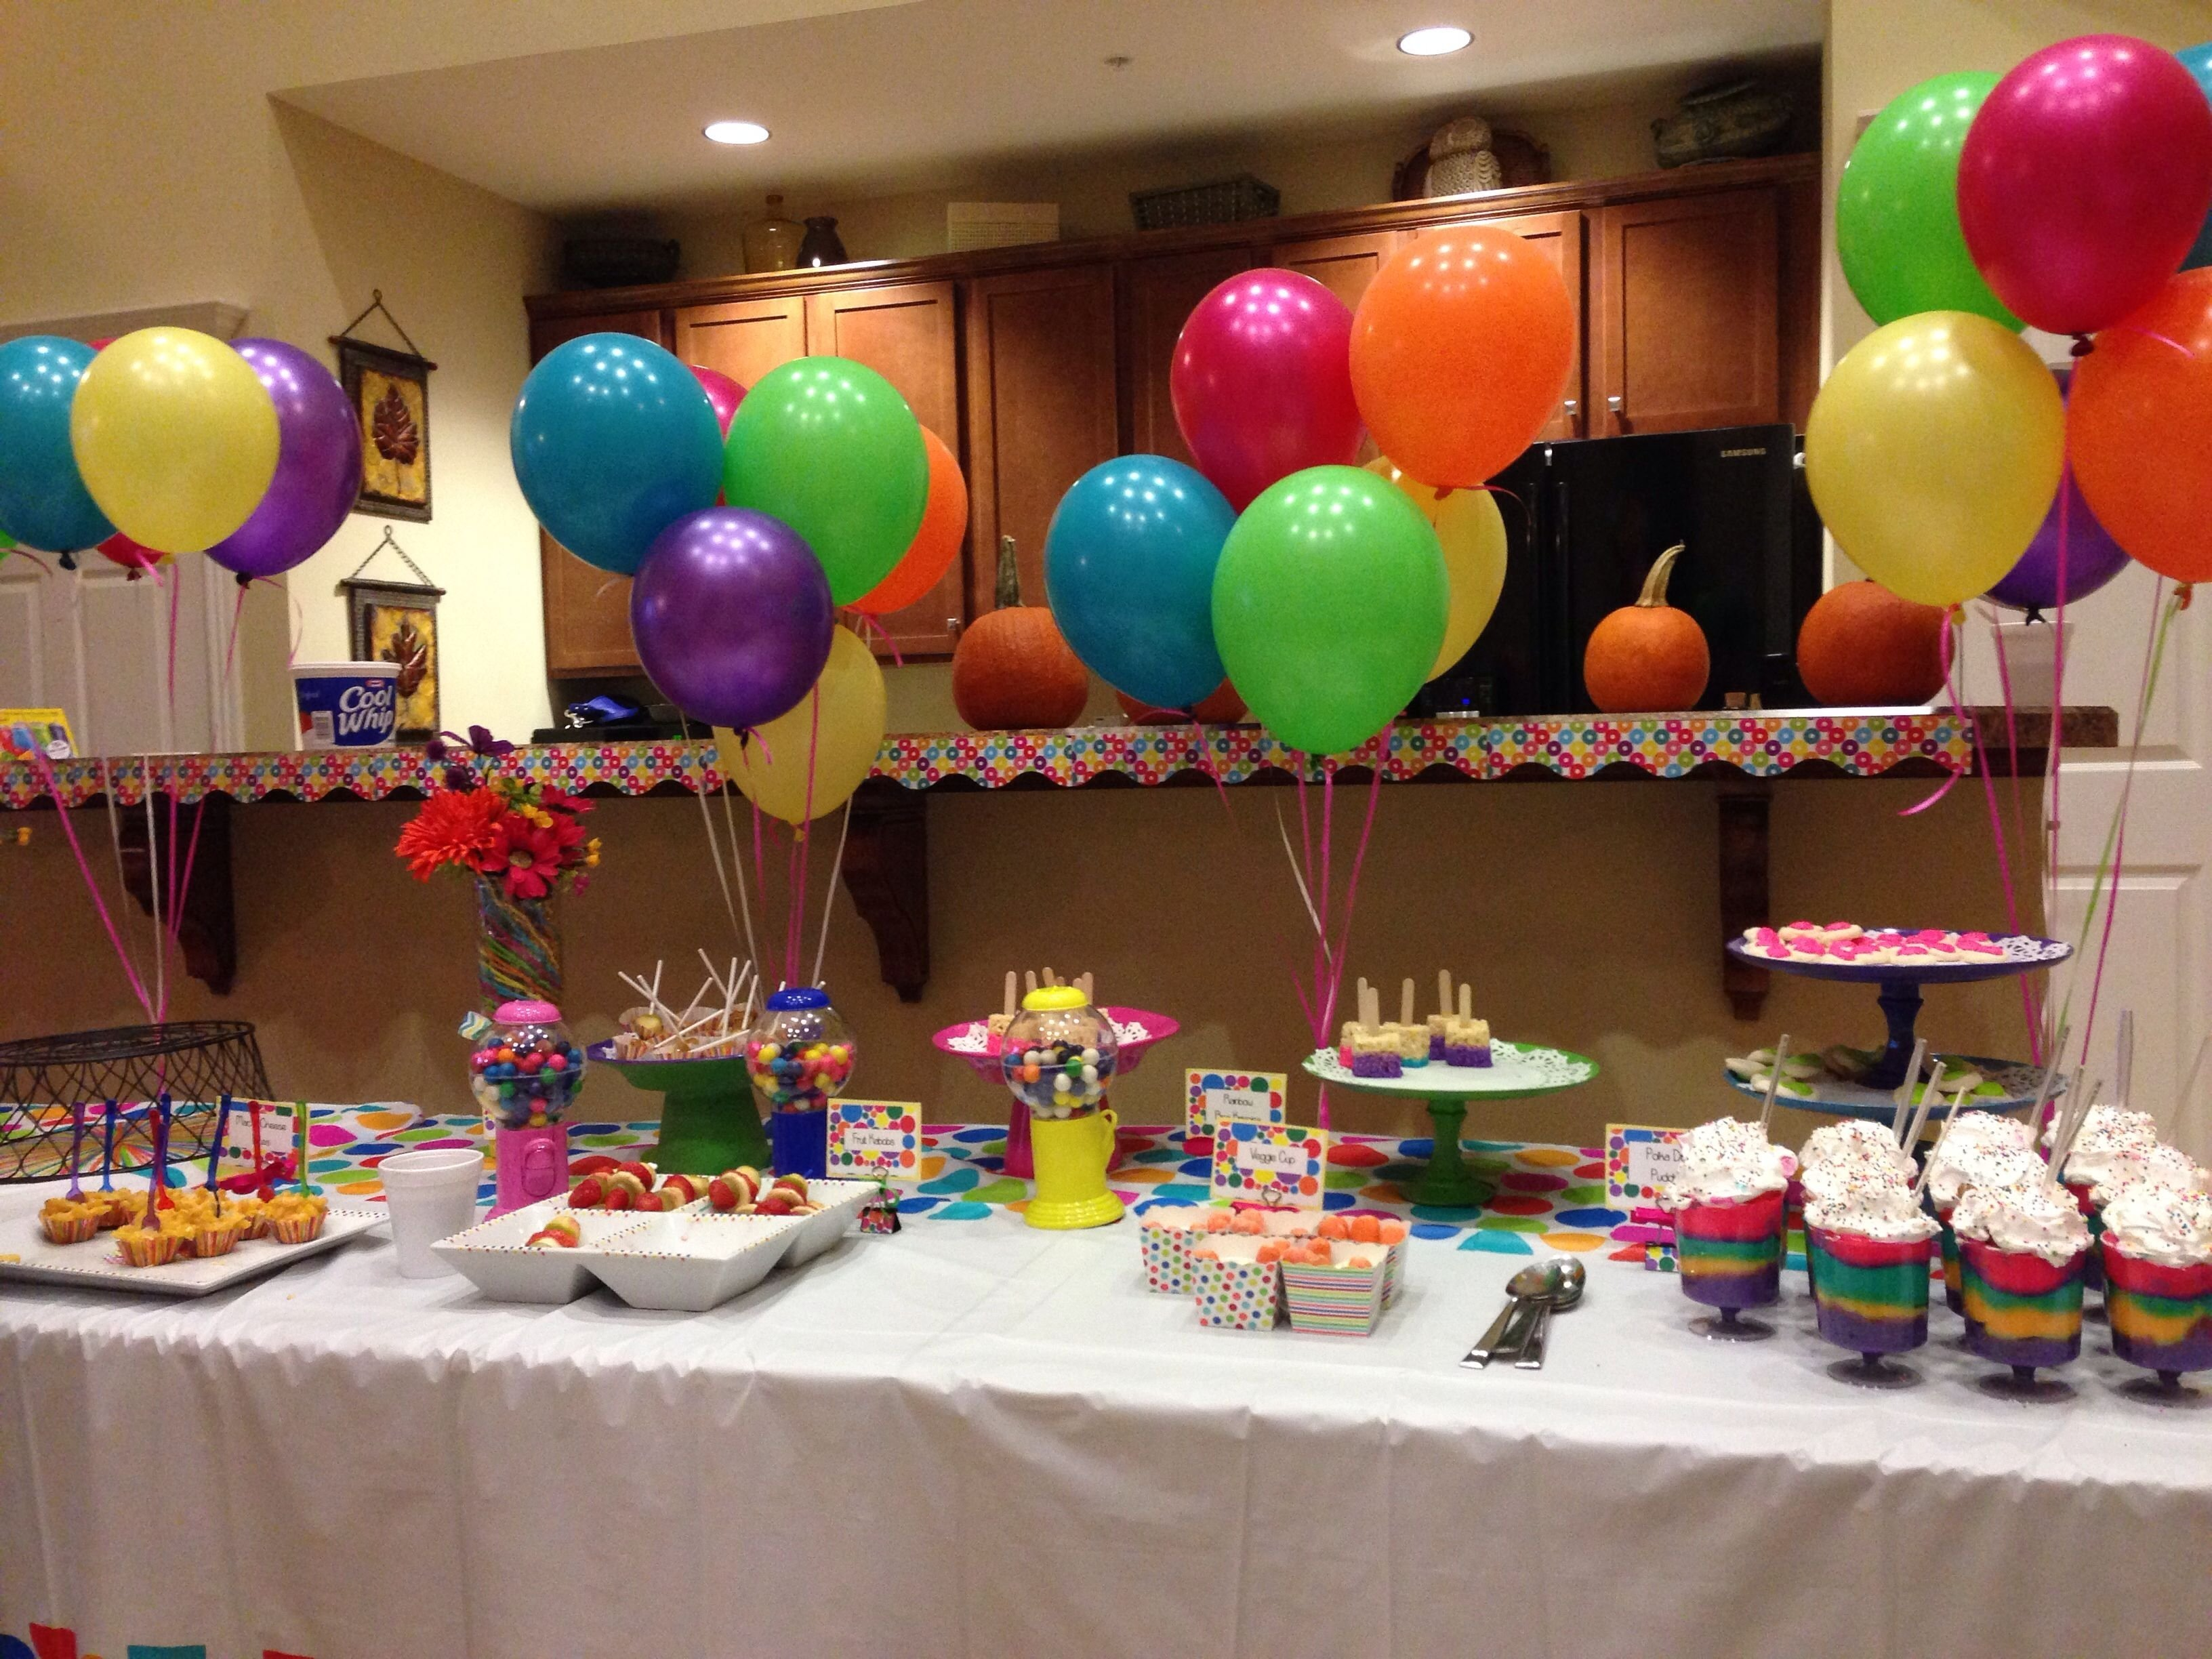 10 Fashionable Ideas For 2 Year Old Birthday 4 Party